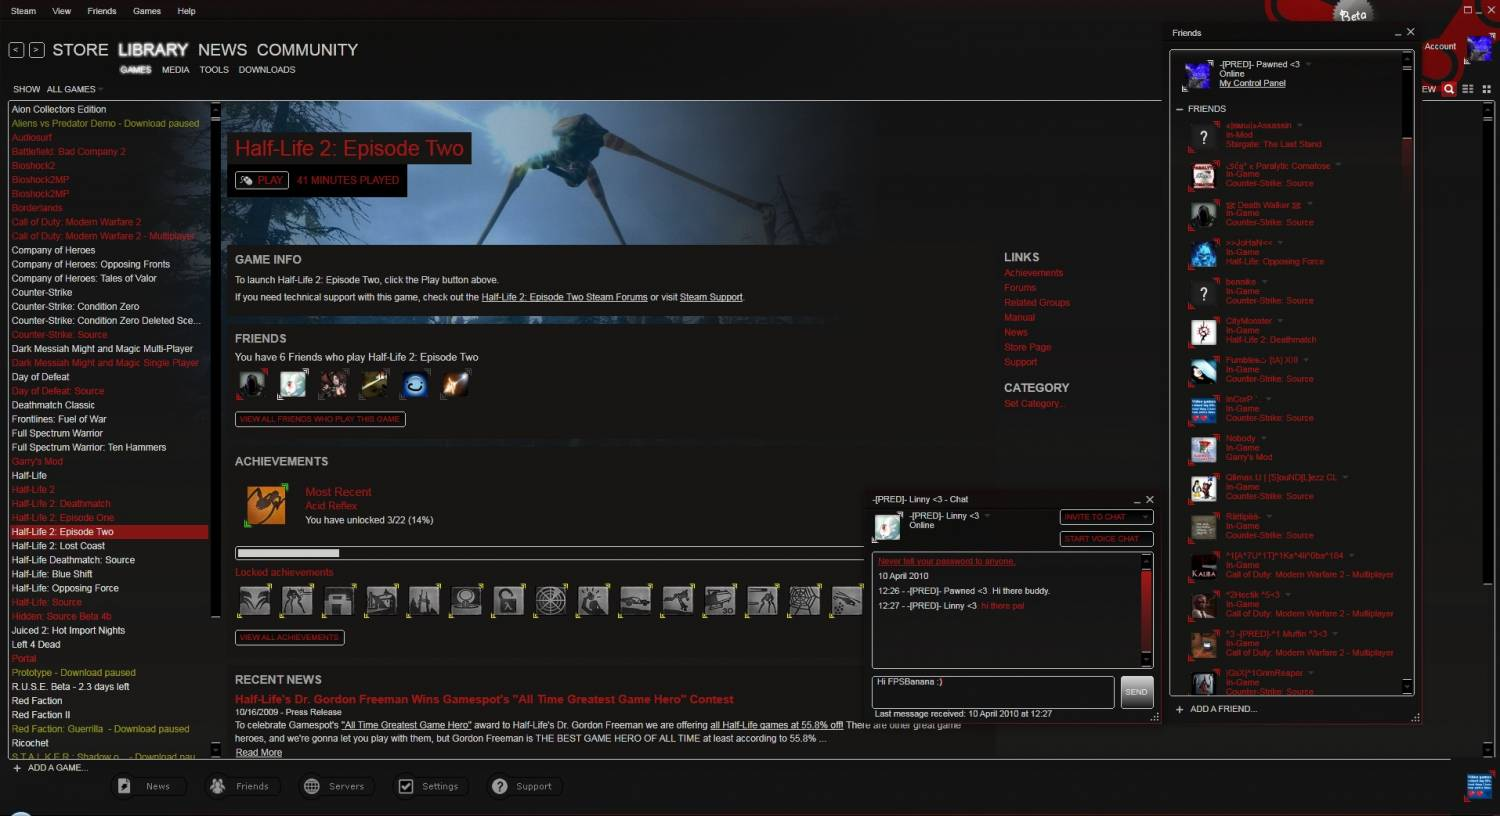 Pawned's Steam GUI